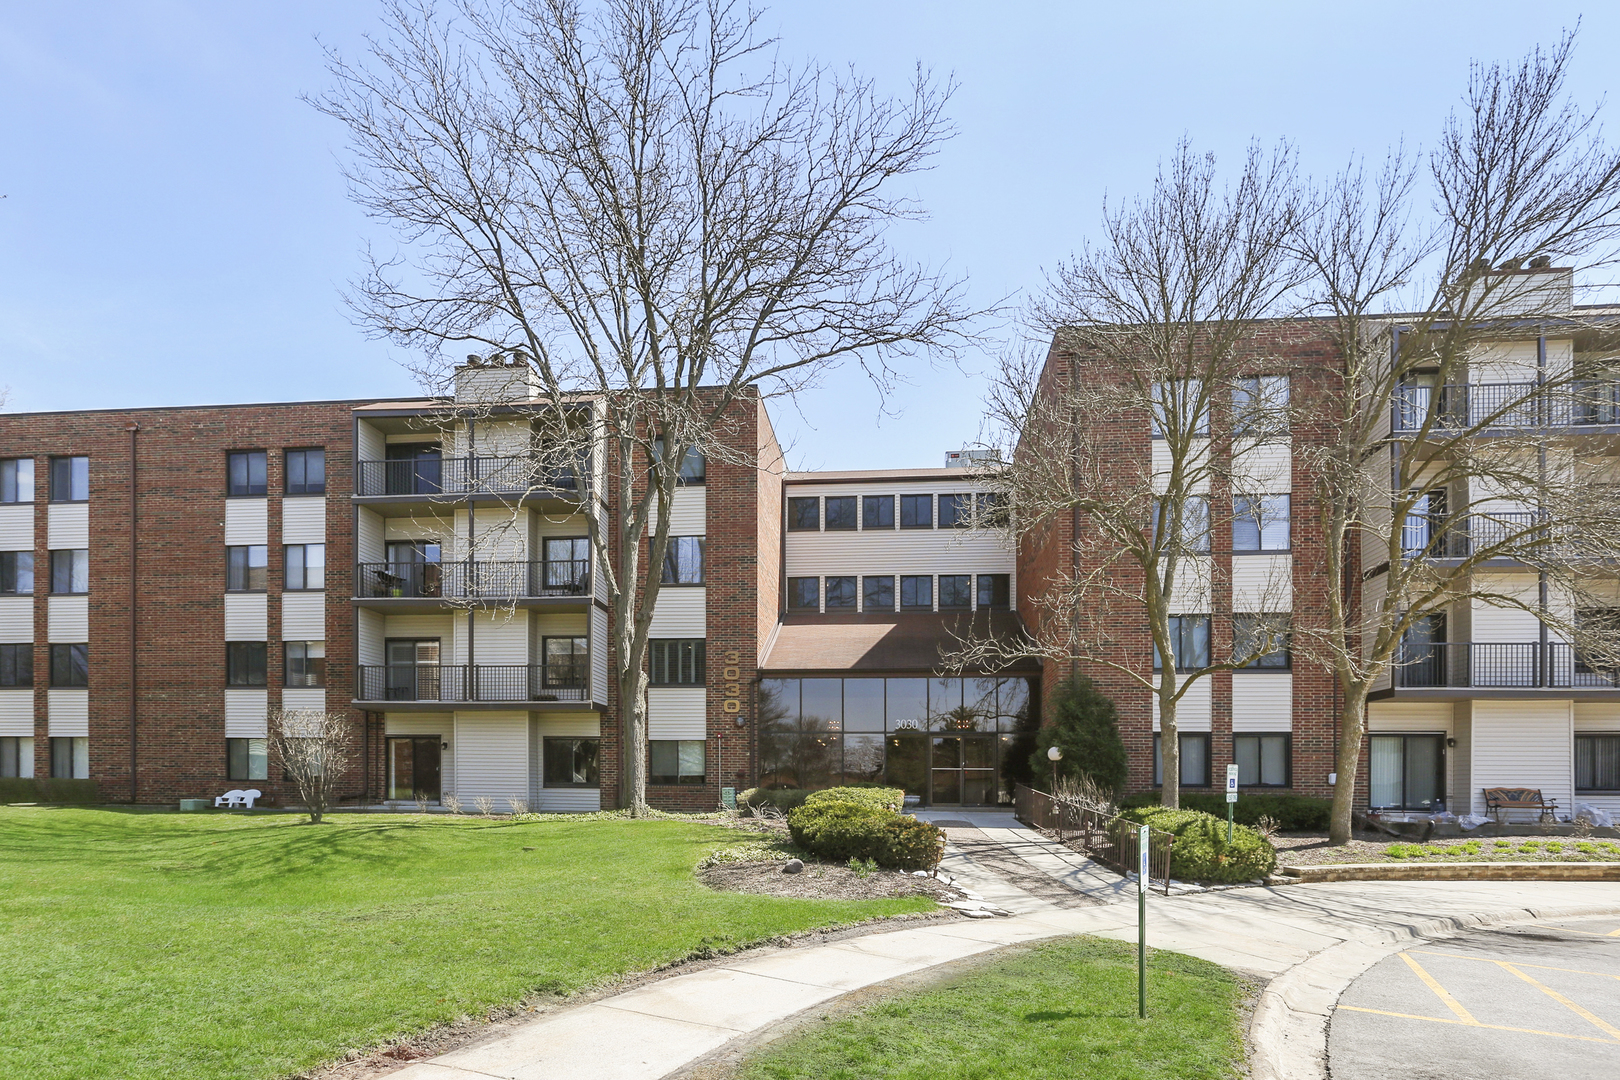 3030 Pheasant Creek Drive, Northbrook in Cook County, IL 60062 Home for Sale